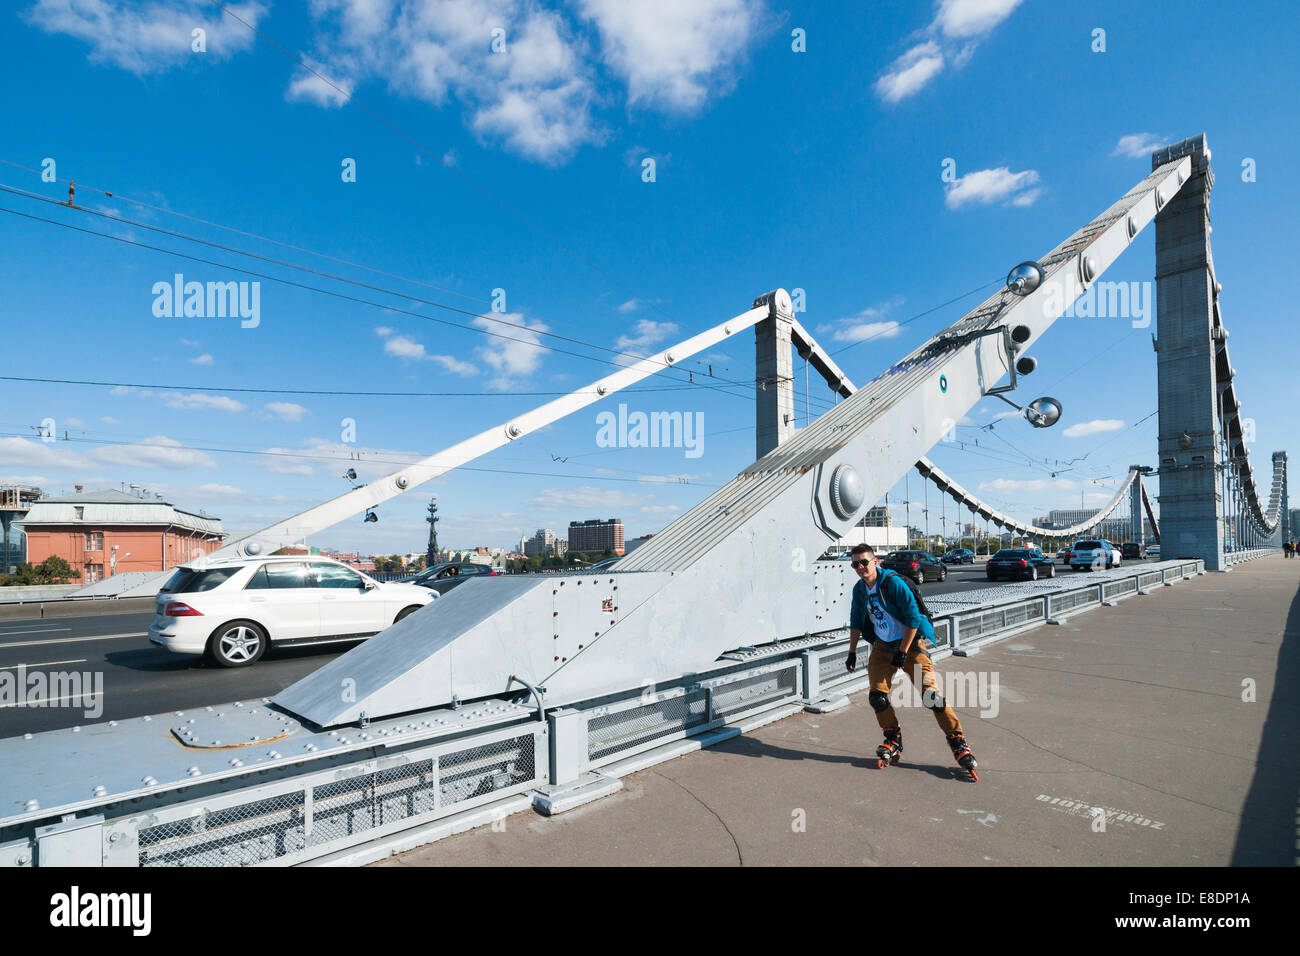 Active pastime of the youth. Sunny midweek in Moscow, Russia - Stock Image